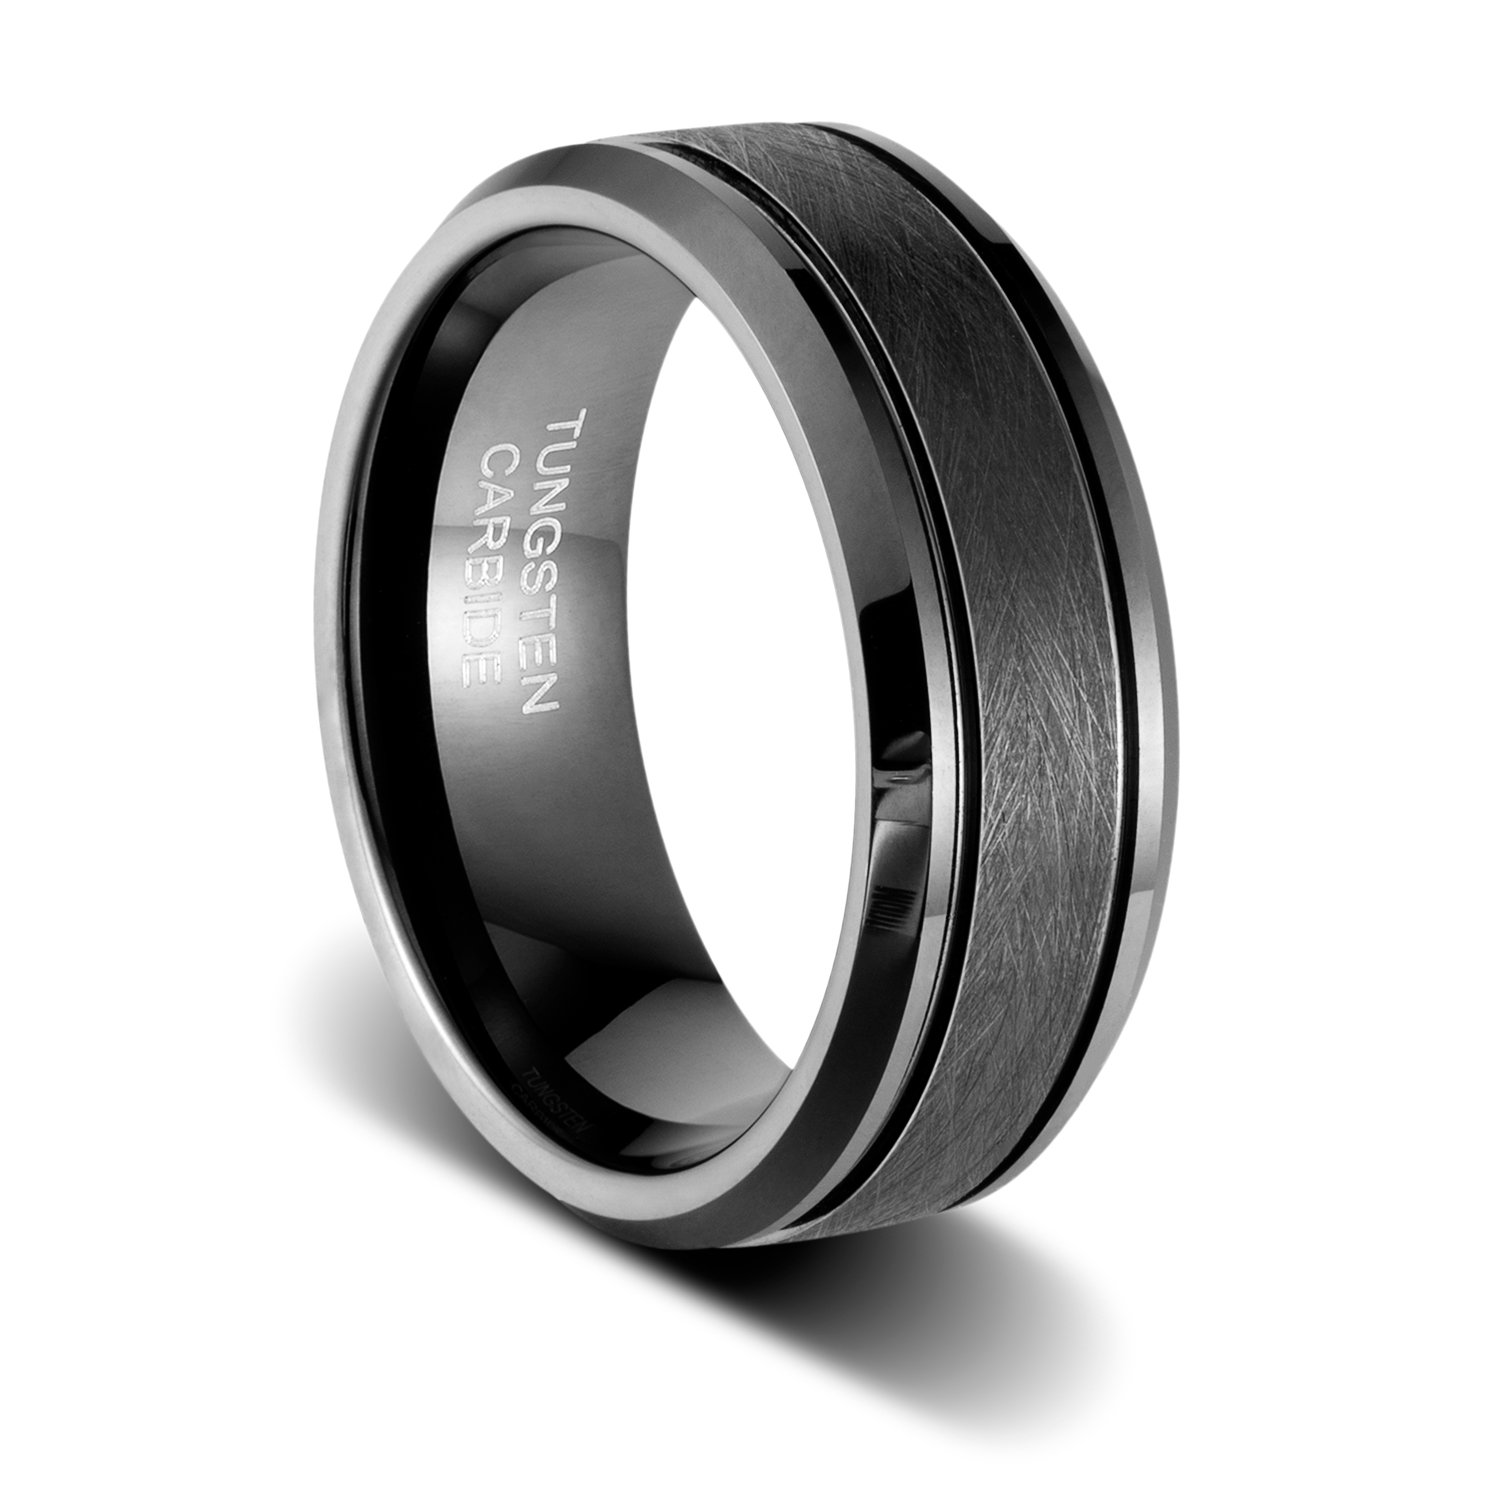 TUSEN JEWELRY 8mm Handle Brushed Two Grooved Black Polished Beveled Edges Tungsten Wedding Band Ring Size:10